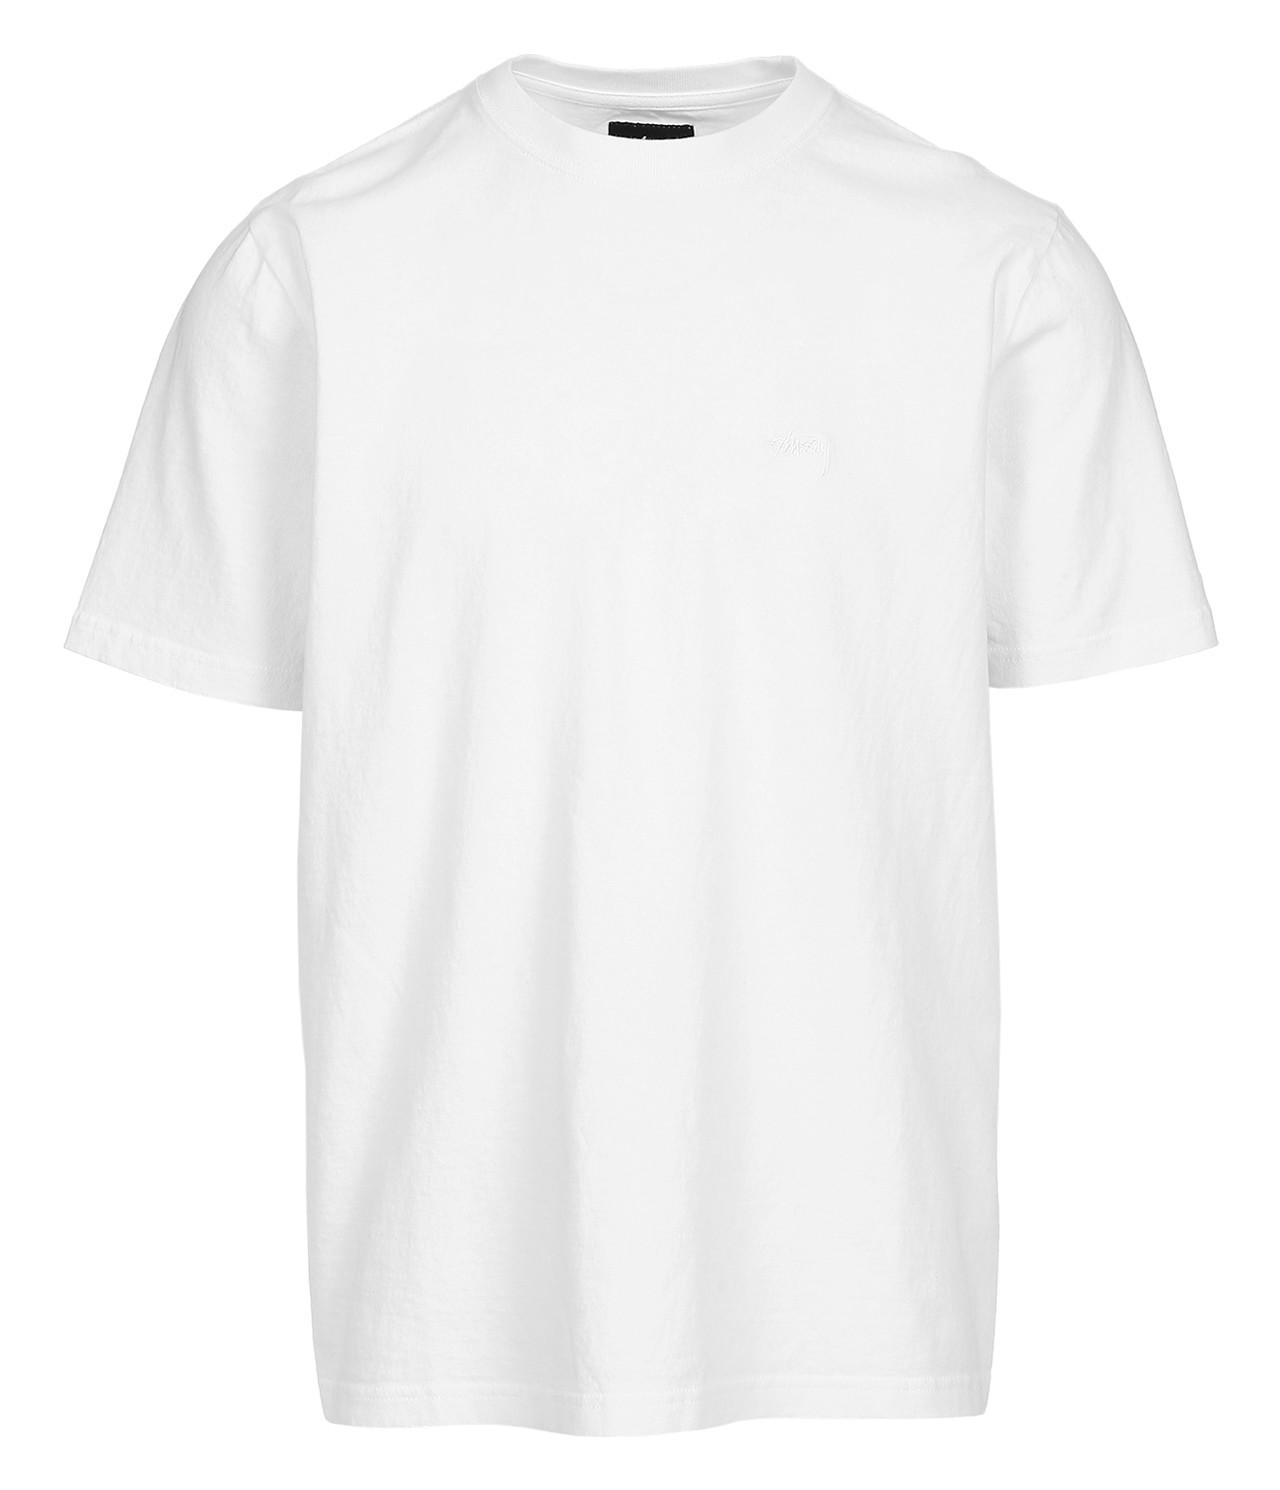 d012d08f901 Stussy Classic S s Jersey in White for Men - Lyst